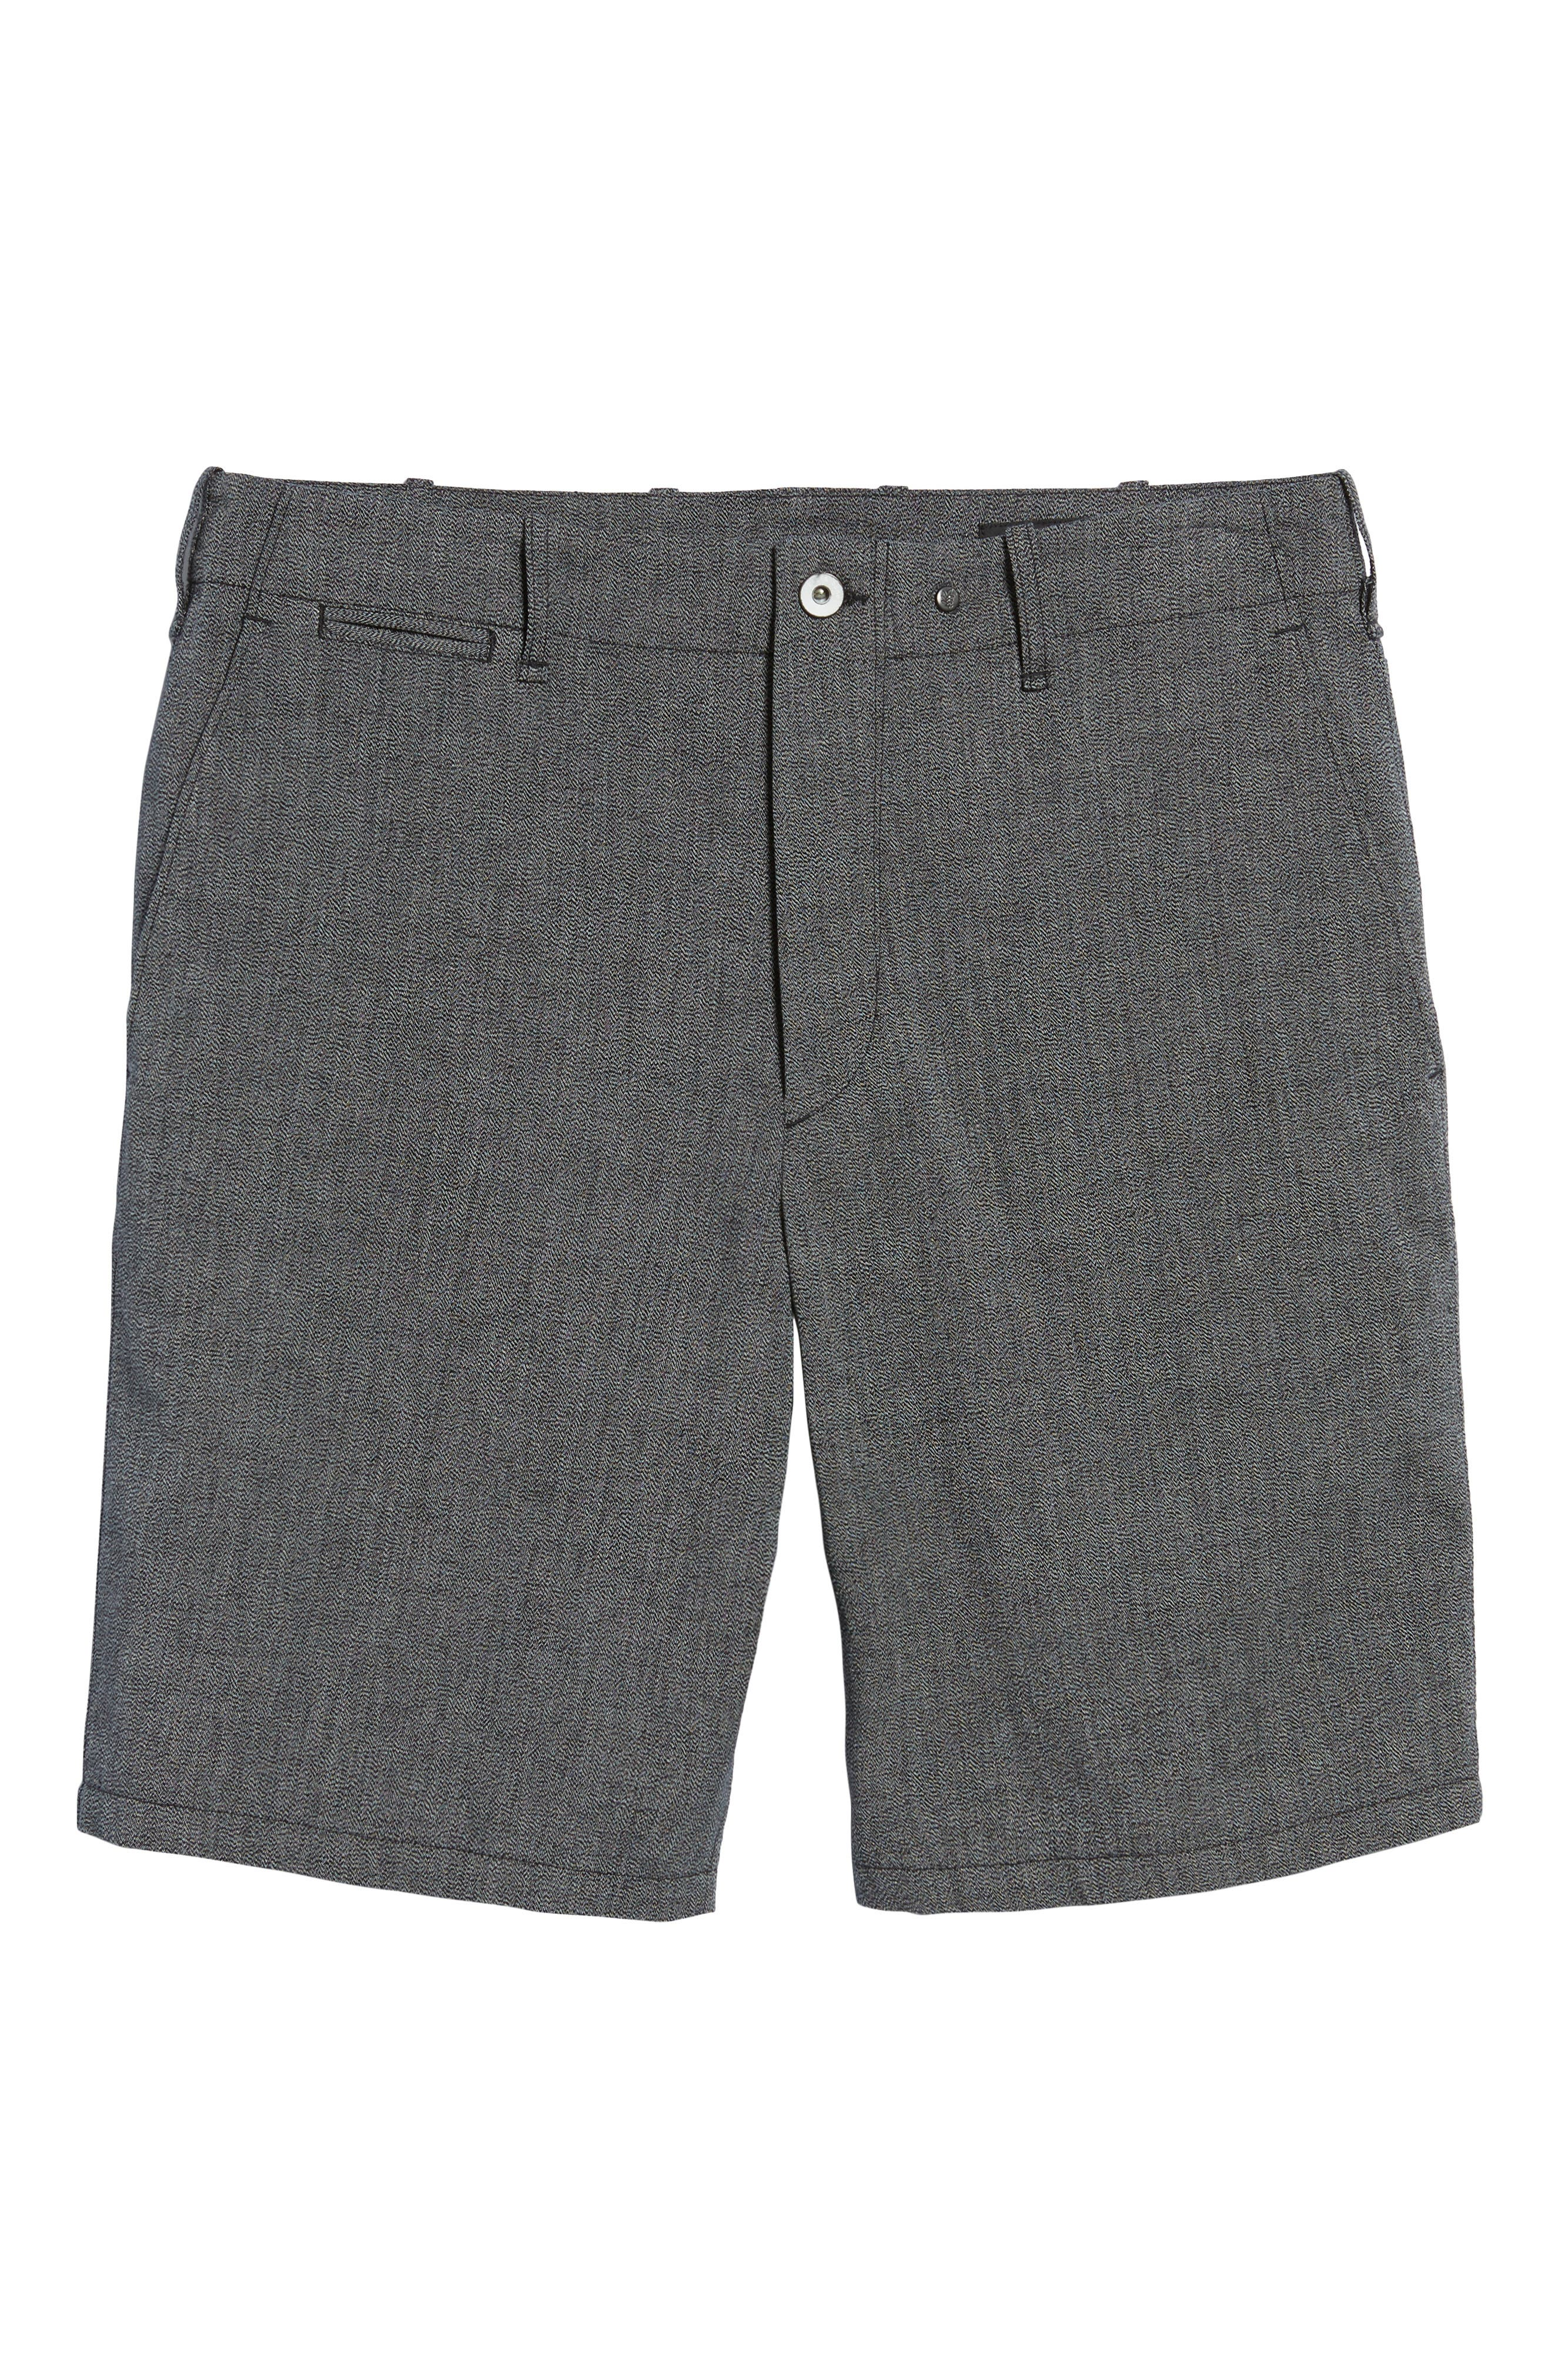 Base Classic Fit Shorts,                             Alternate thumbnail 6, color,                             020